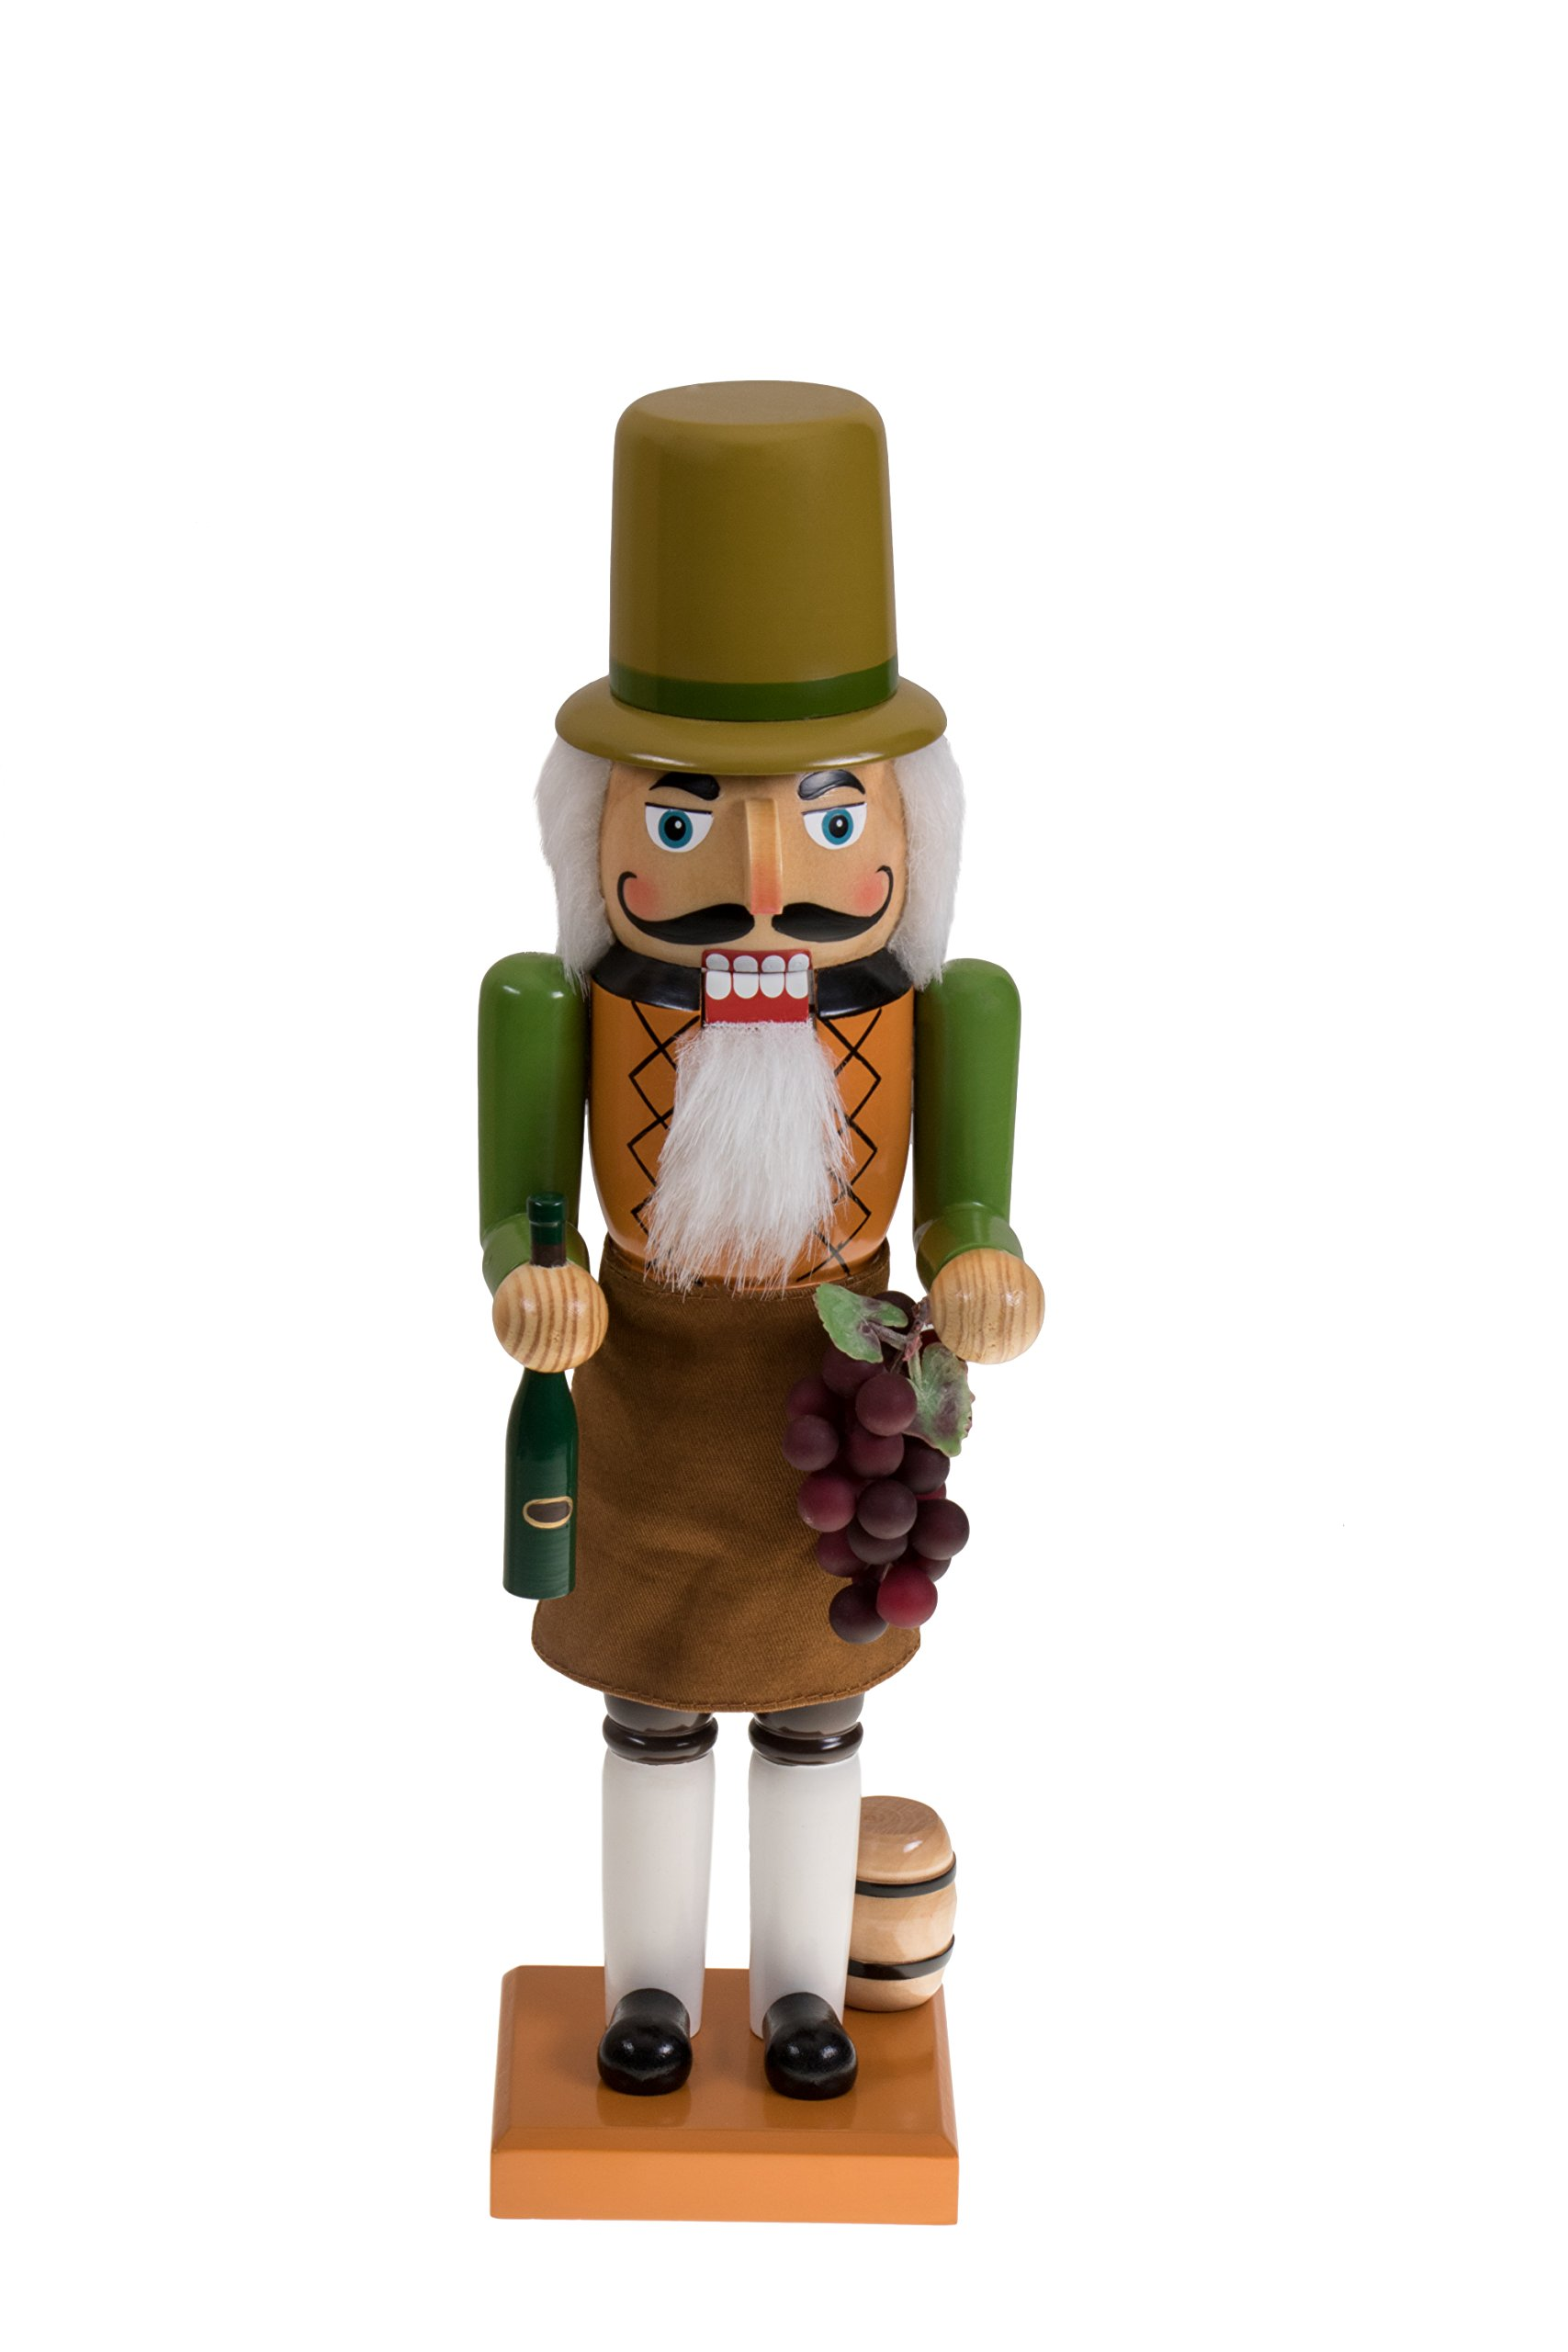 Italian Nutcracker by Clever Creations | Wearing Vineyard Outfit | Holding Grapes and a Bottle of Wine | Fun Christmas Decor | Perfect Addition to Any Collection | 100% Wood | 14'' Tall